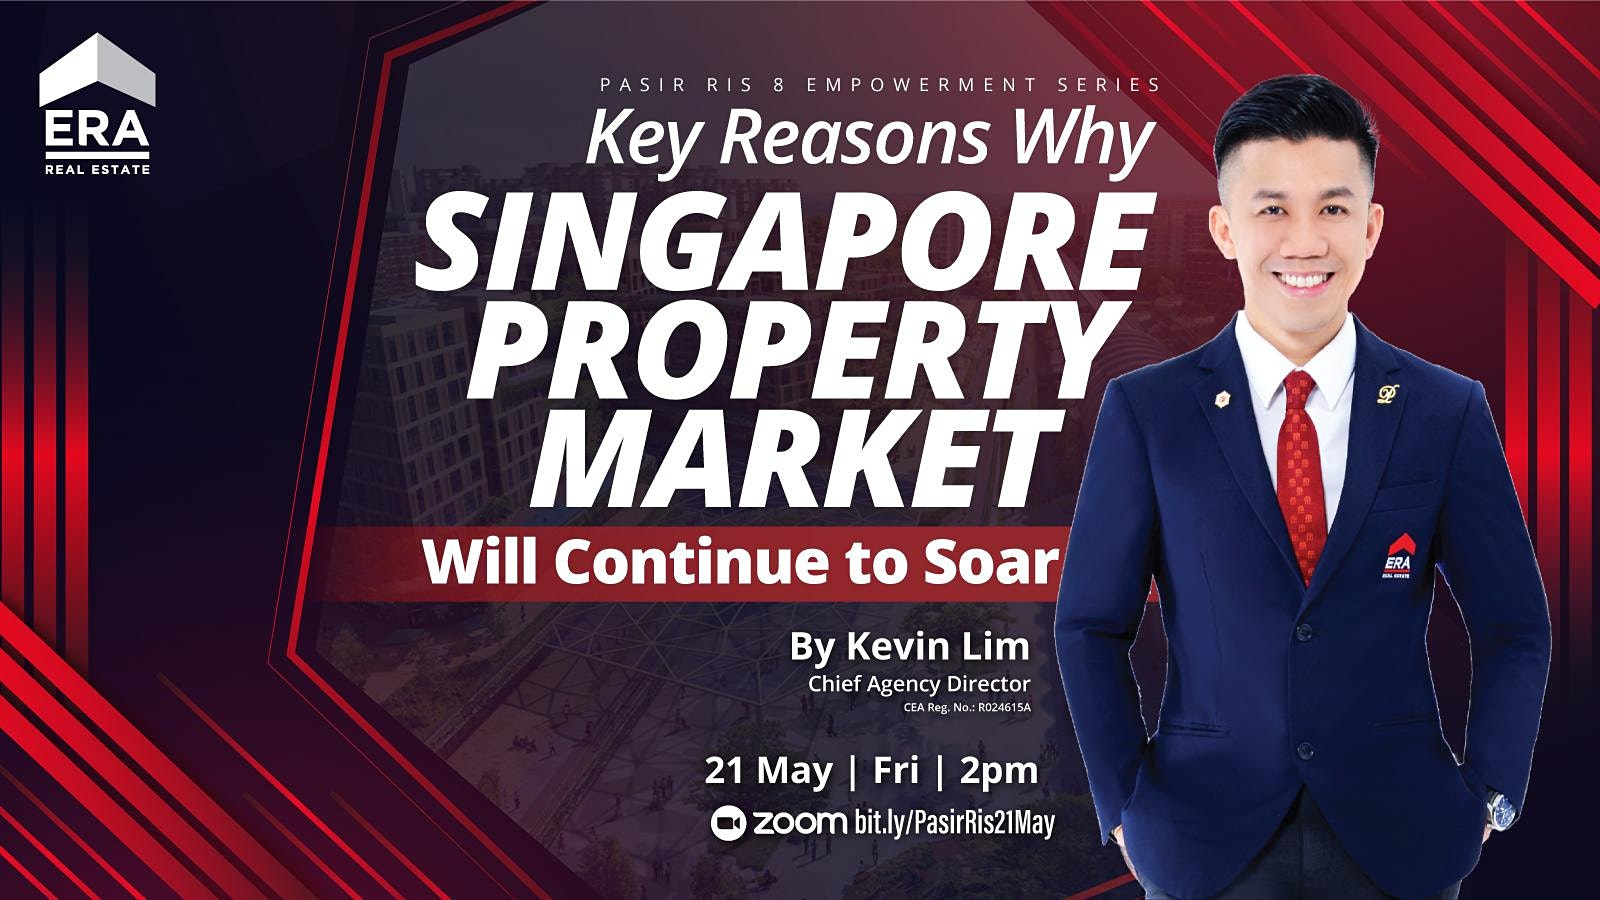 Key Reasons Why Singapore Property Market Will Continue To Soar